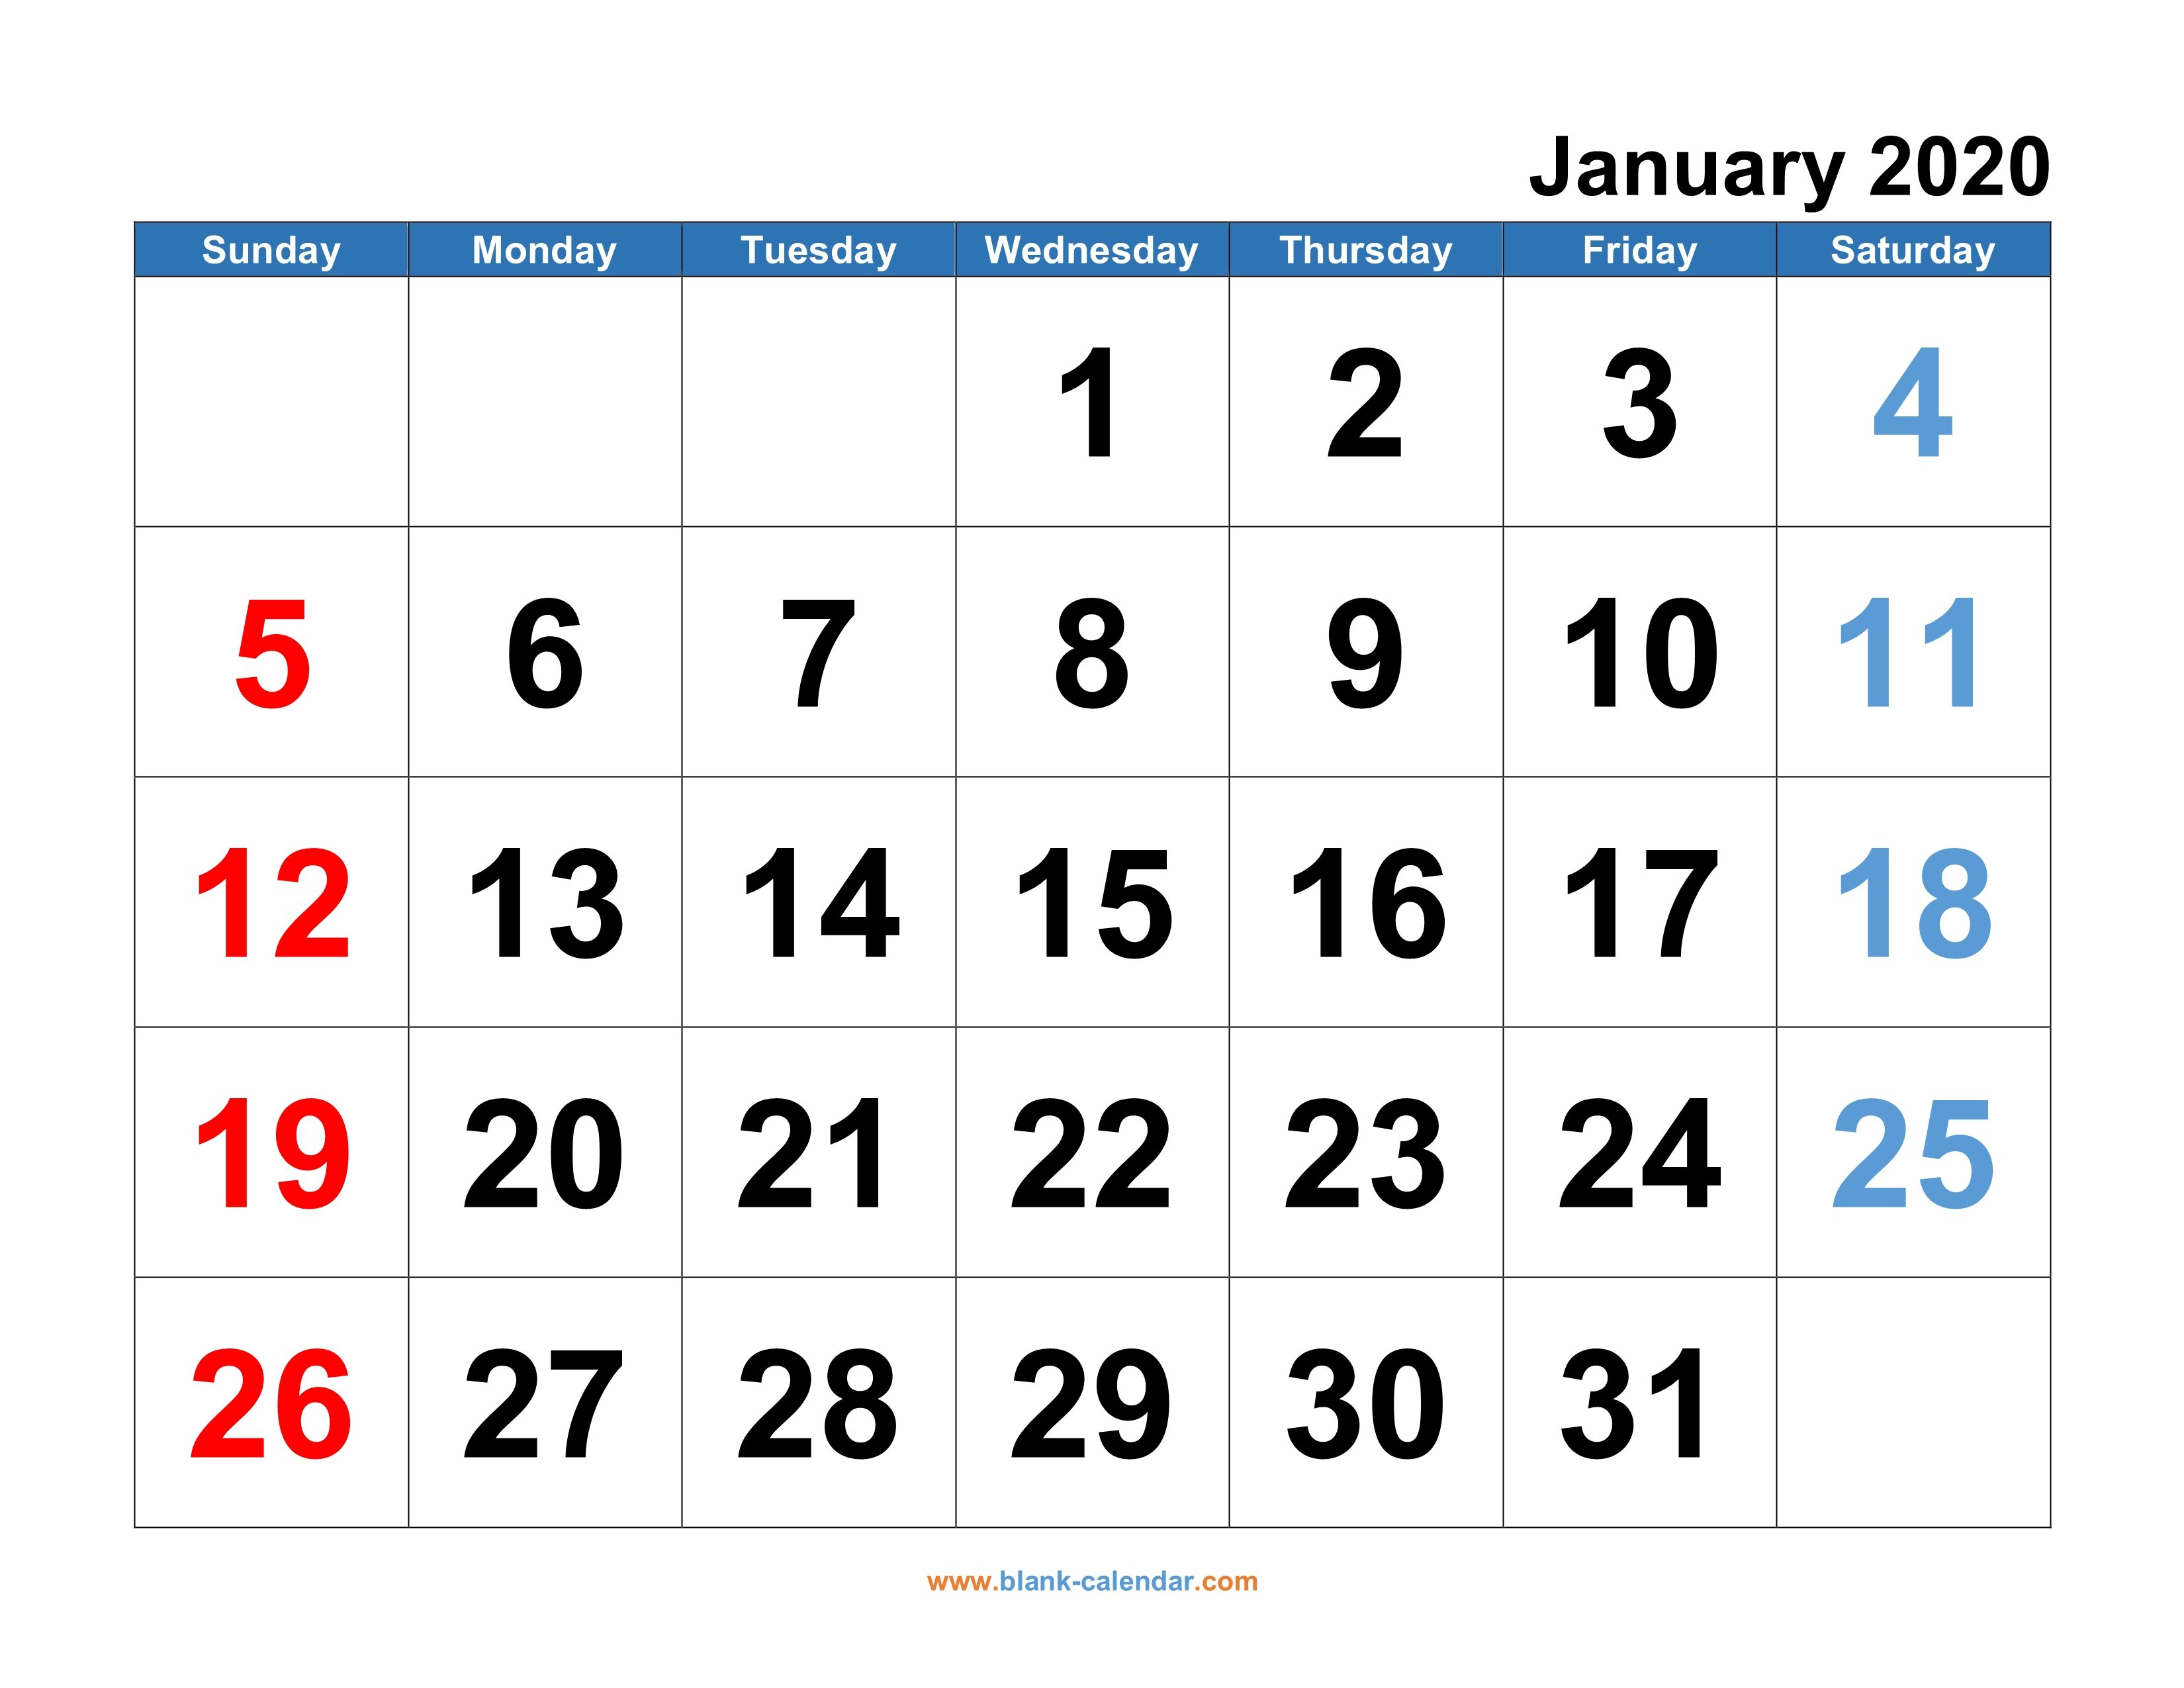 Monthly Calendar 2020   Free Download, Editable And Printable Free Calendar To Edit